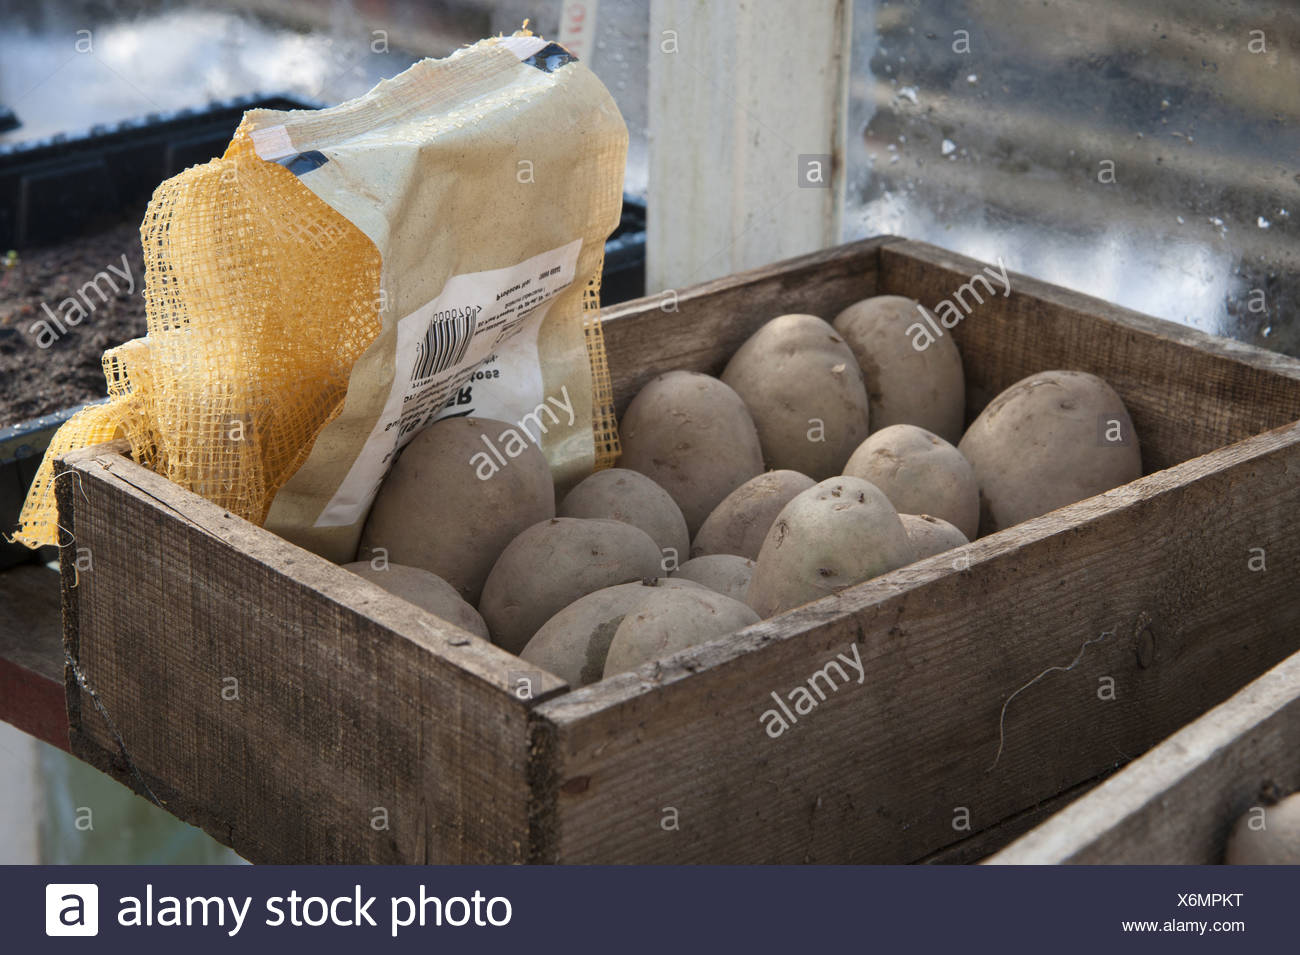 Potato (Solanum tuberosum) 'Maris Piper' variety seed tubers in wooden box in garden greenhouse Chipping Lancashire England - Stock Image